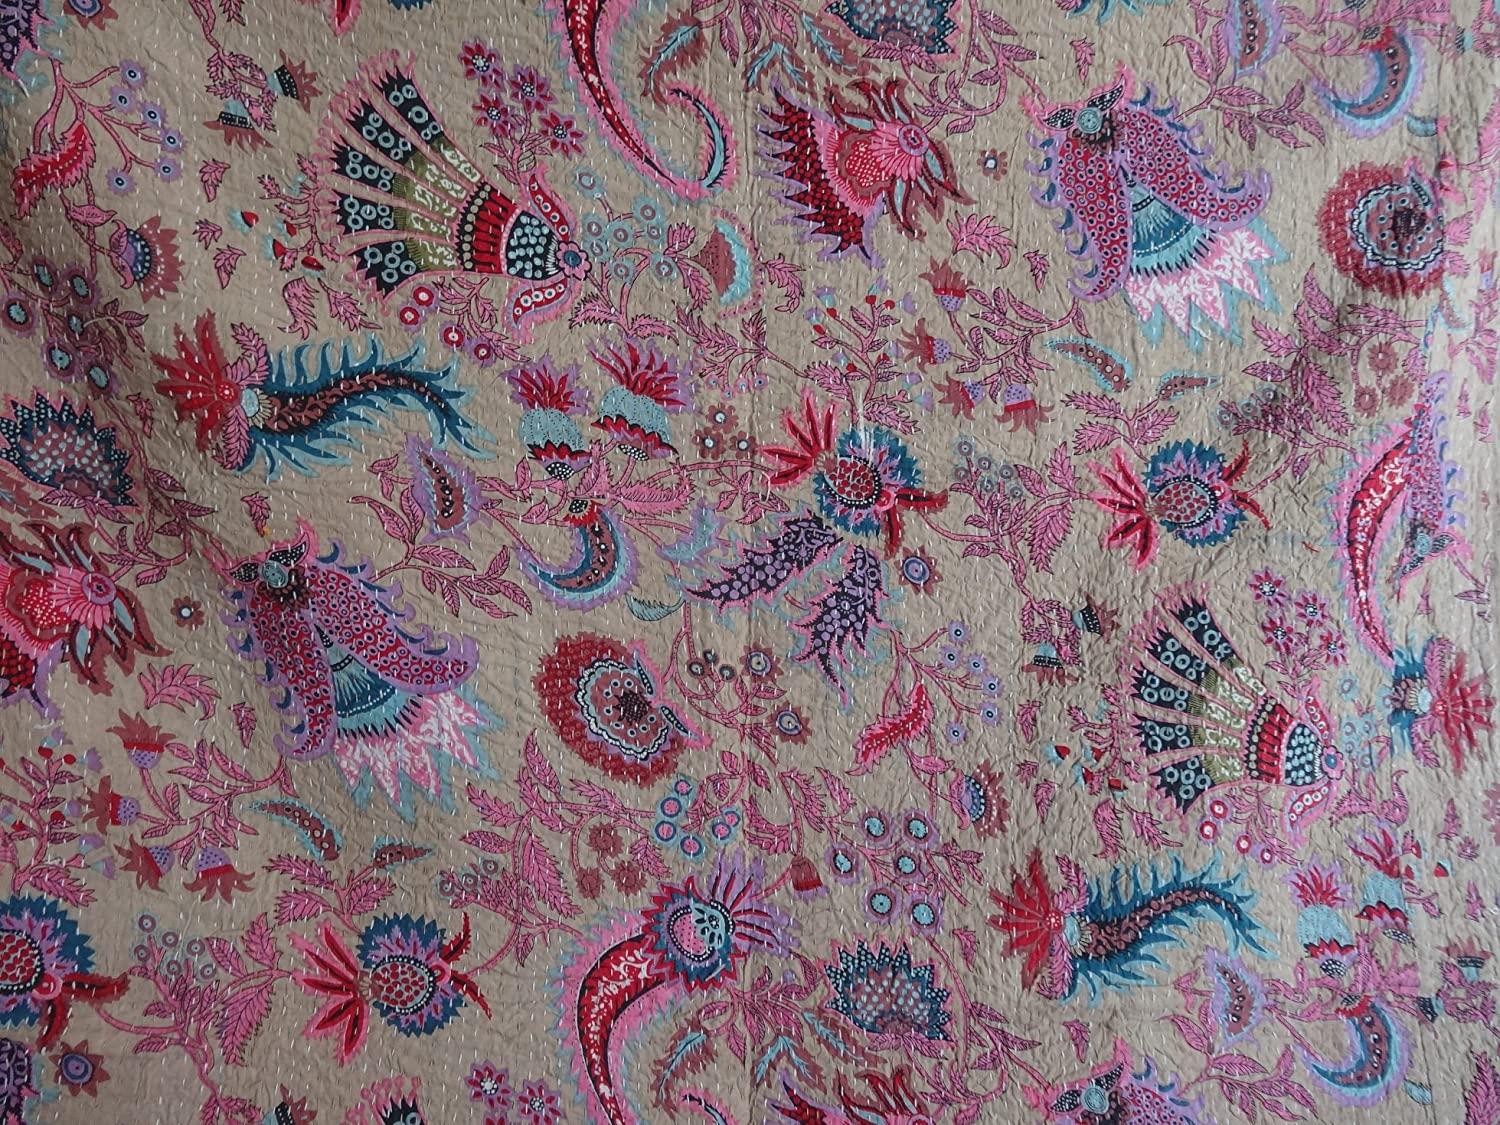 Kantha Blanket Bed Cover Tribal Asian Textiles Multicolor Paisley QUEEN Size Kantha Quilt Bohemian Bedding Kantha Size 90 Inch x 108 Inch 1115 King Kantha bedspread